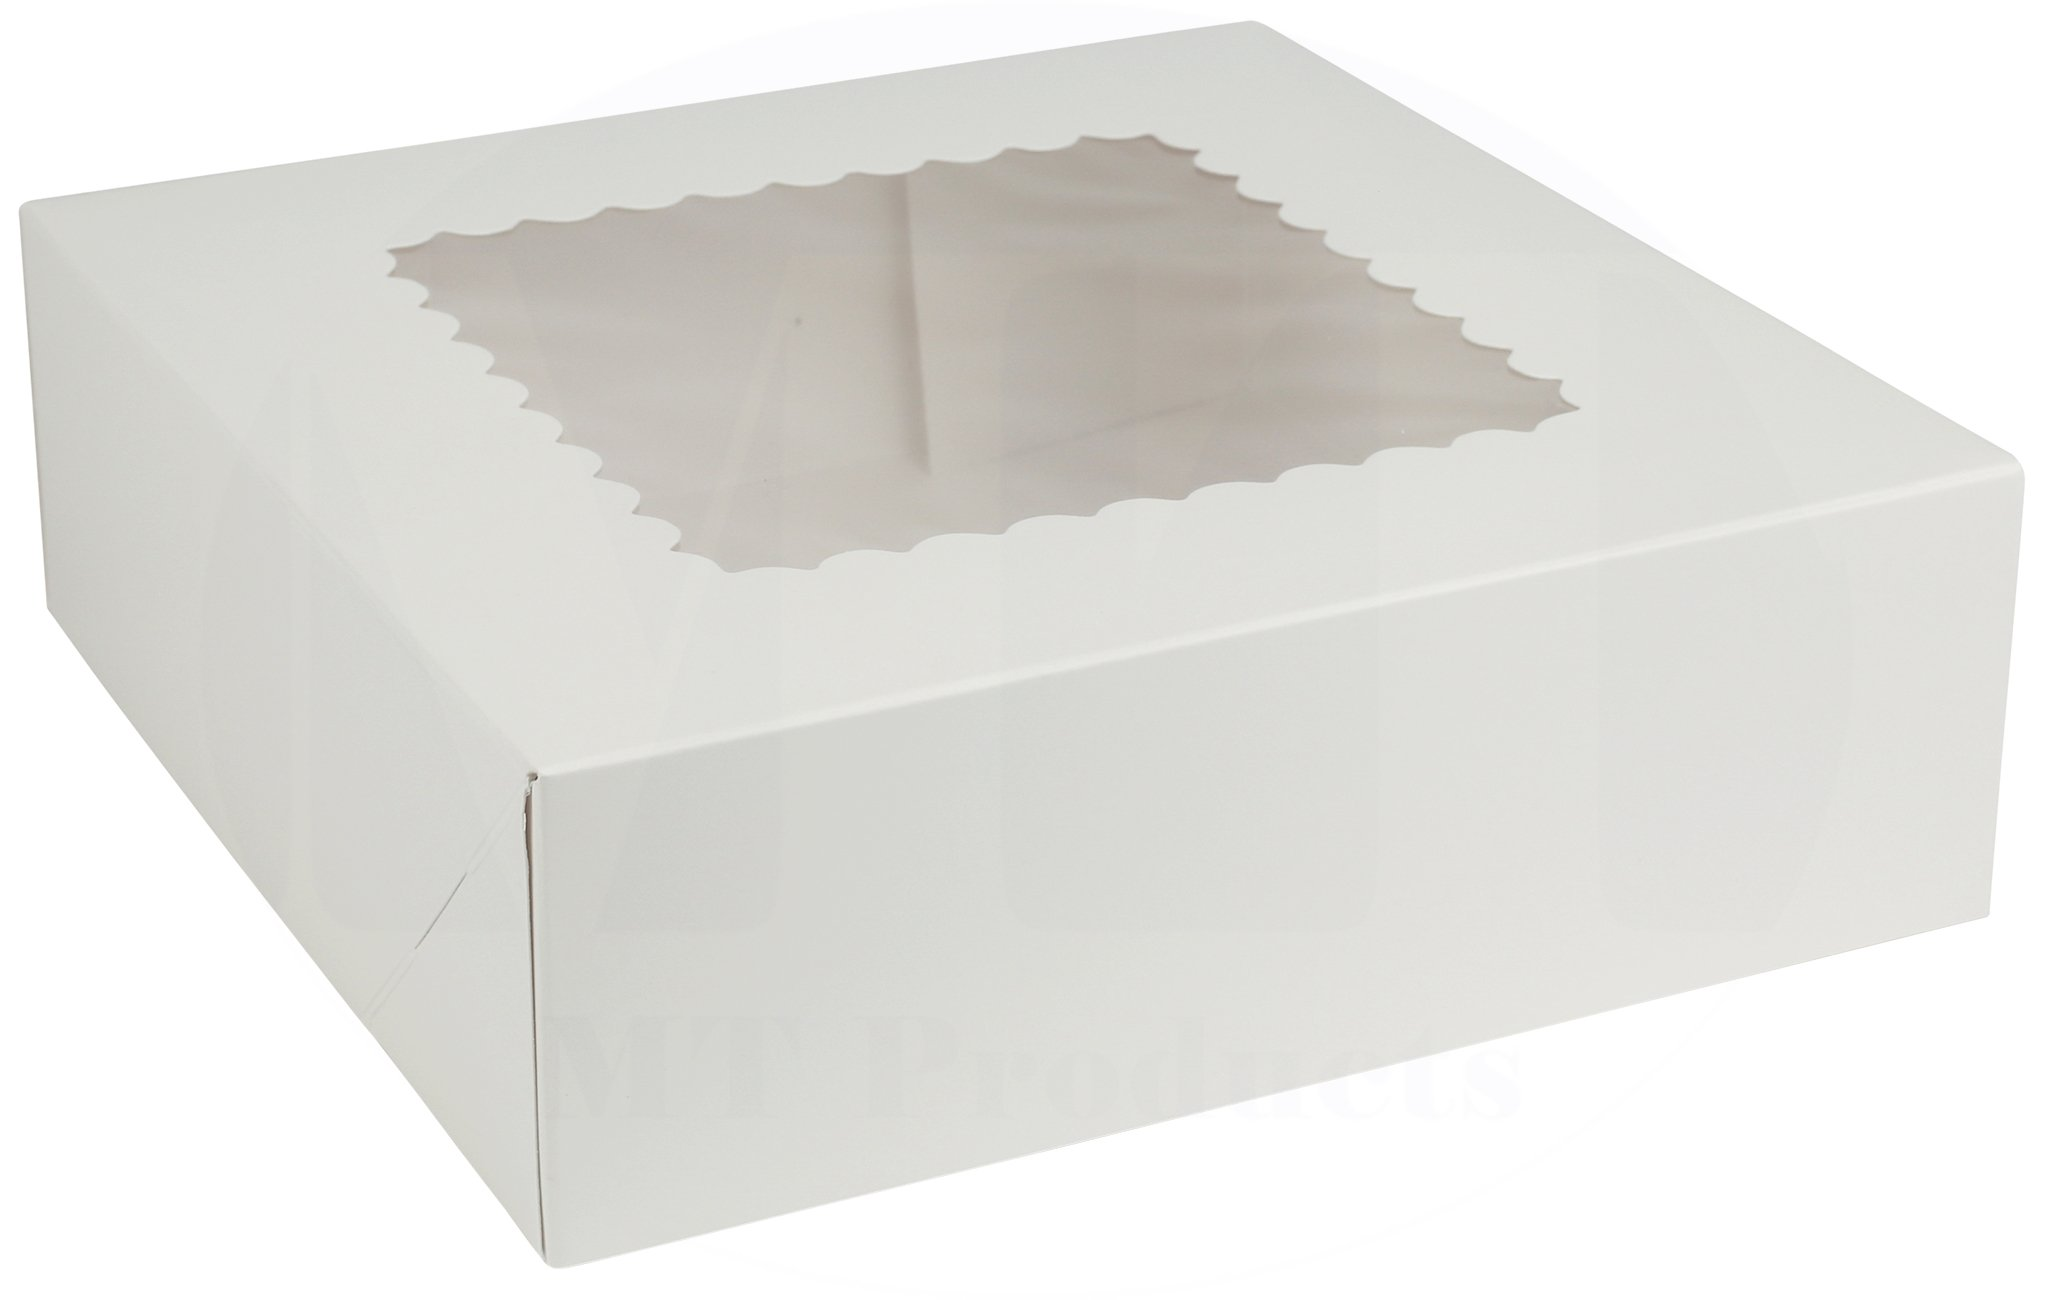 8'' Length x 8'' Width x 2 1/2'' Height White Kraft Paperboard Auto-Popup Rounded Design Window Pie/Bakery Box by MT Products (Pack of 15)